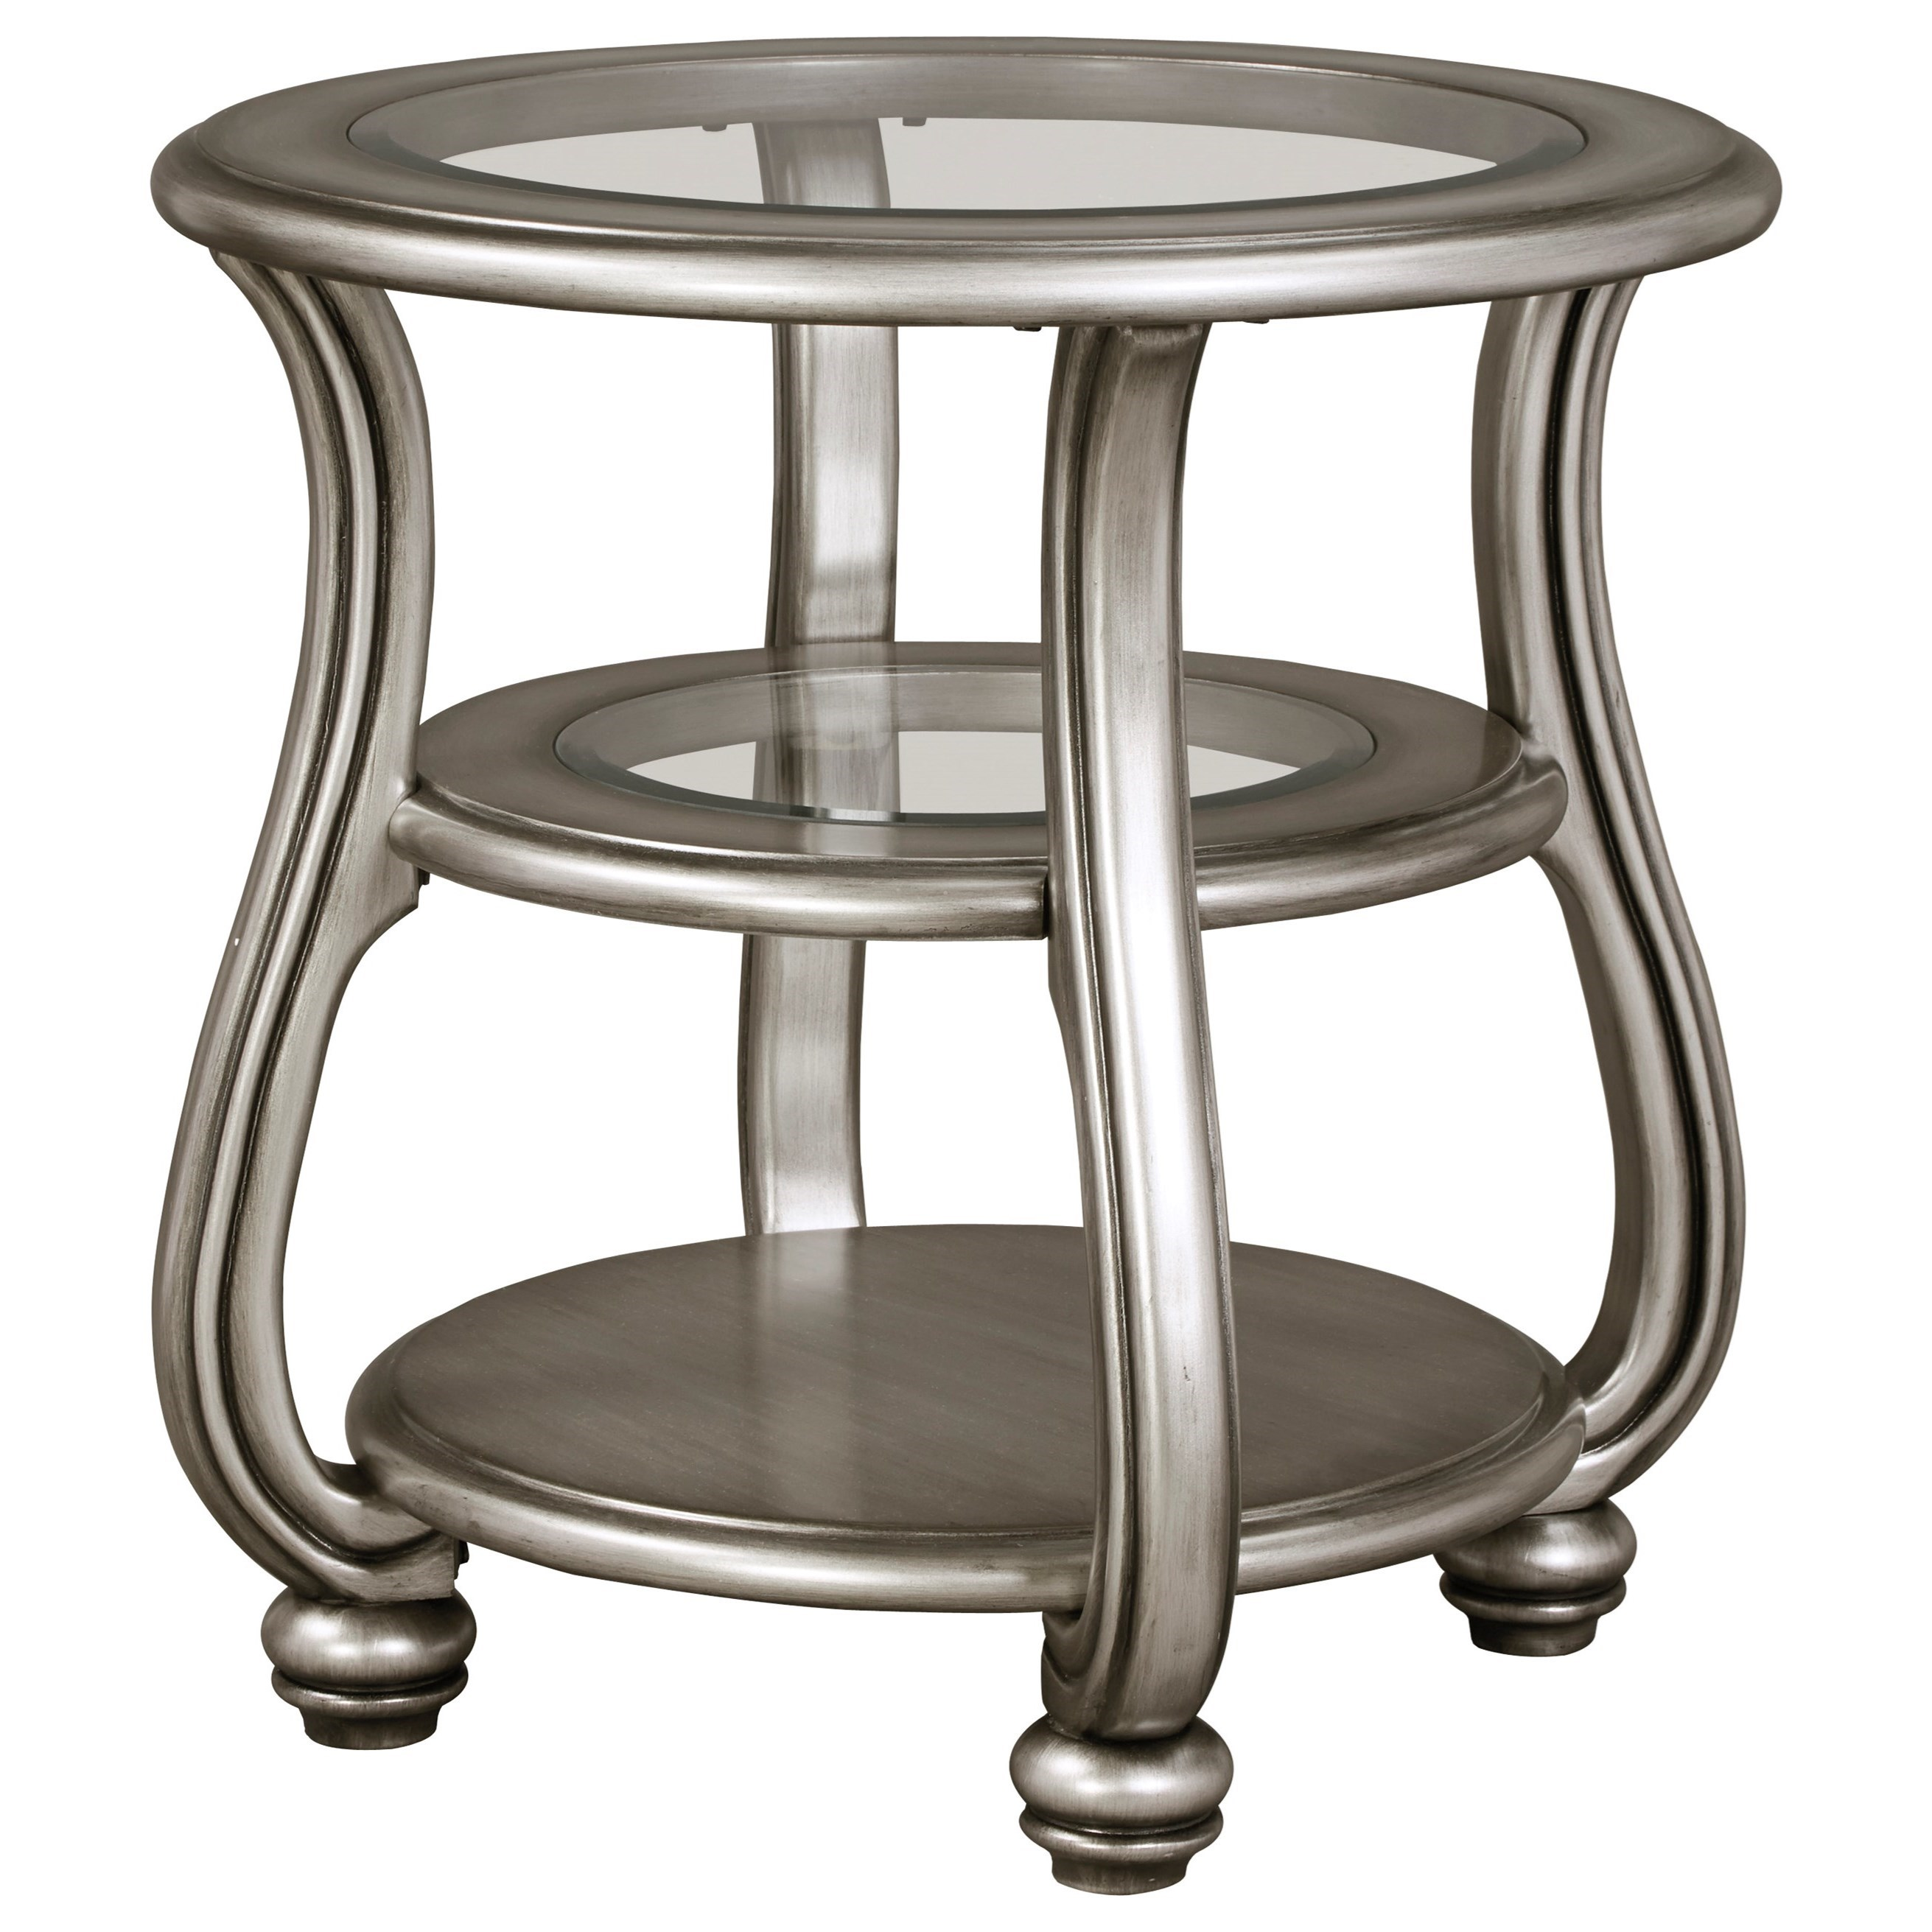 Signature Design by Ashley Coralayne Round End Table - Item Number: T820-6